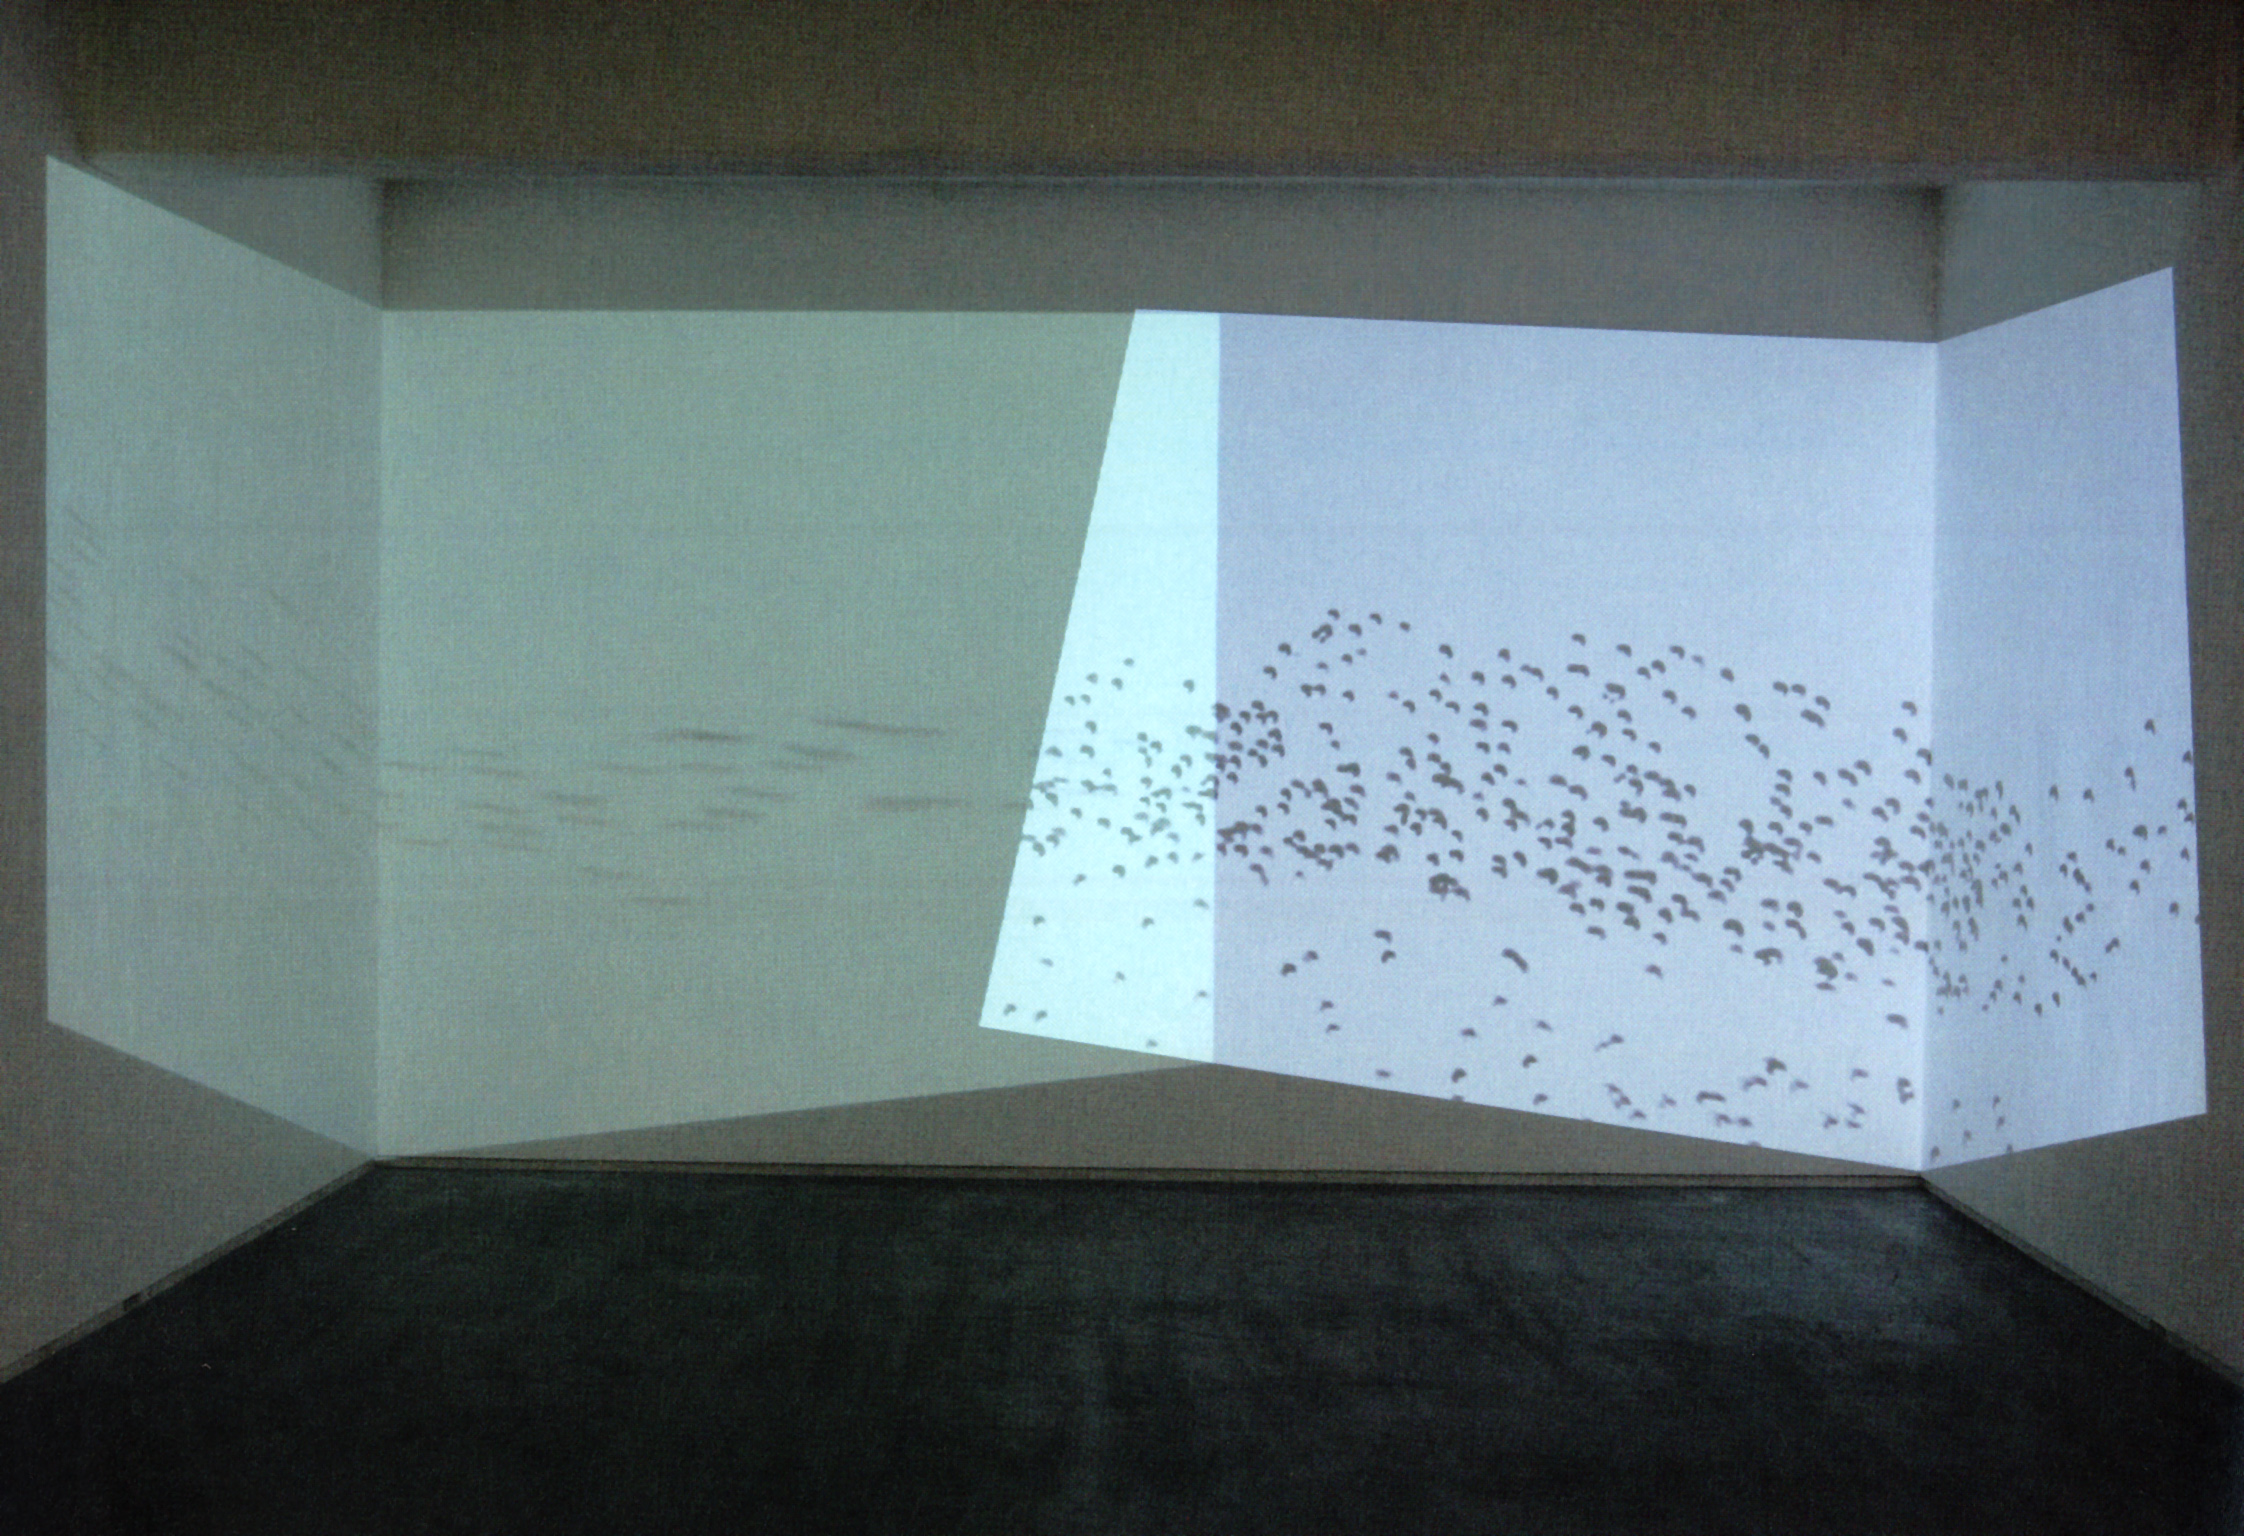 Untitled (birds) , 2006 single-channel video, color, silent 11 min. 13 sec., dimensions variable Edition of 5